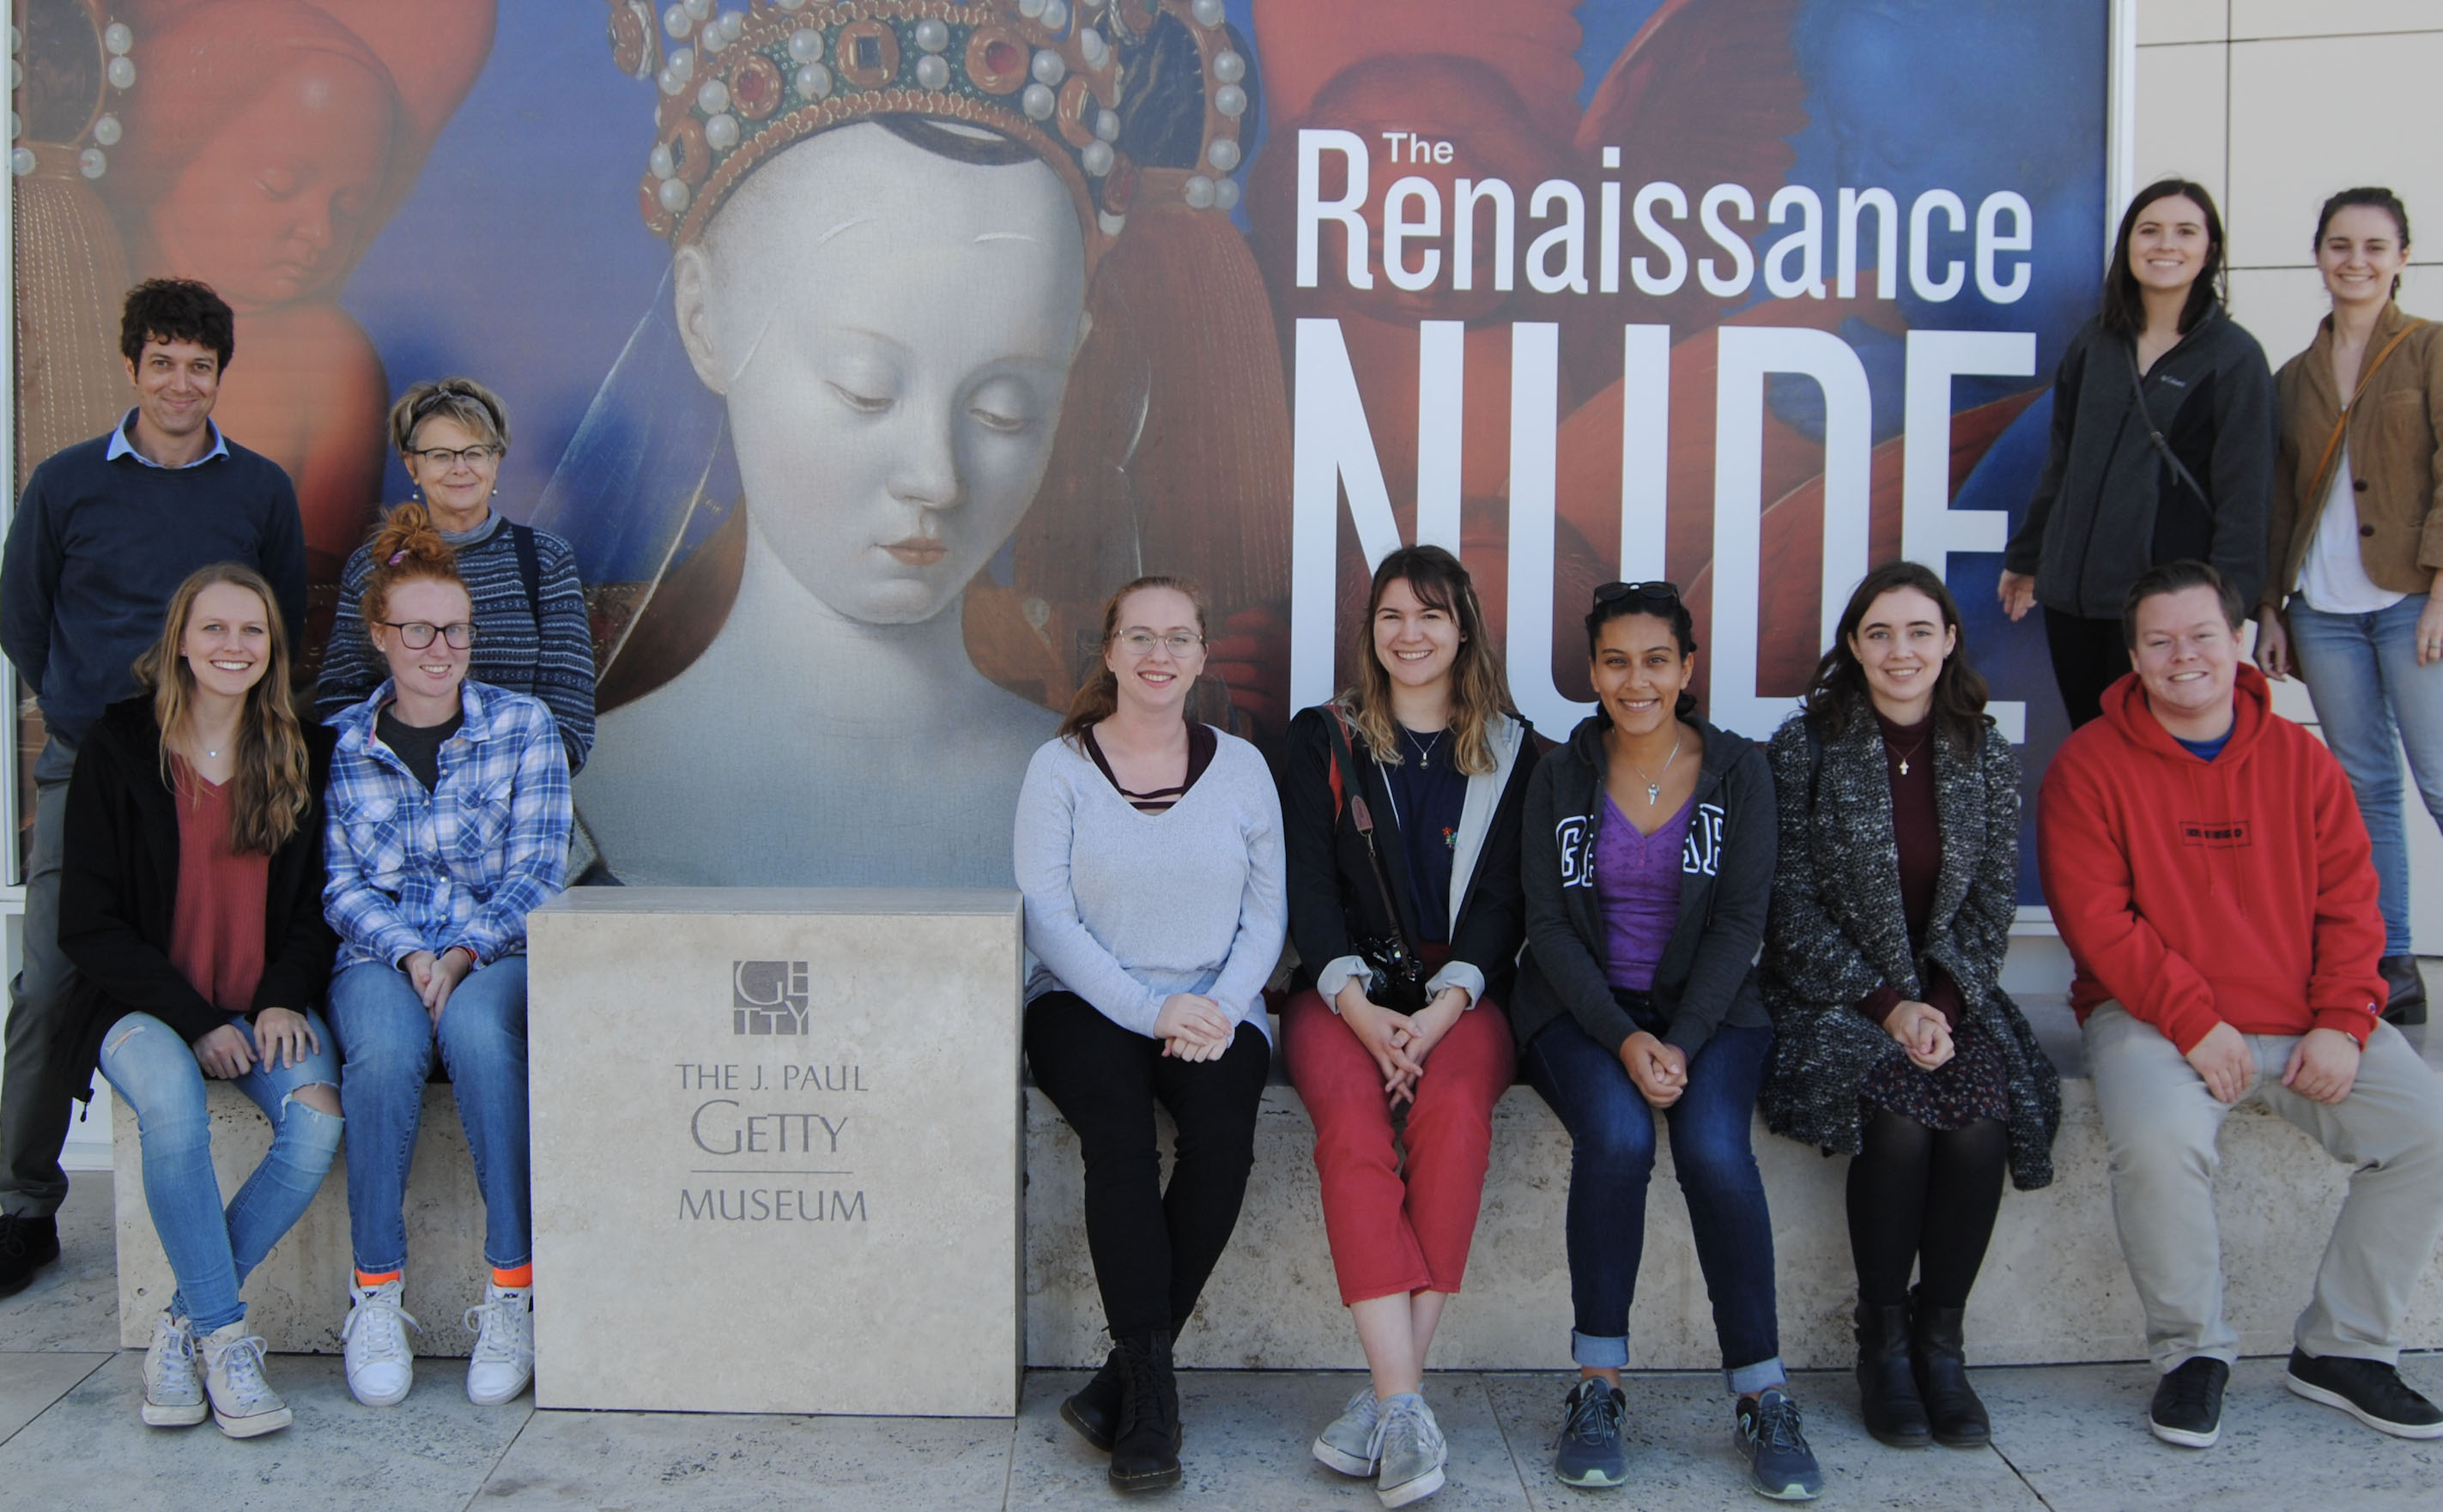 ART 371 students outside Getty exhibit